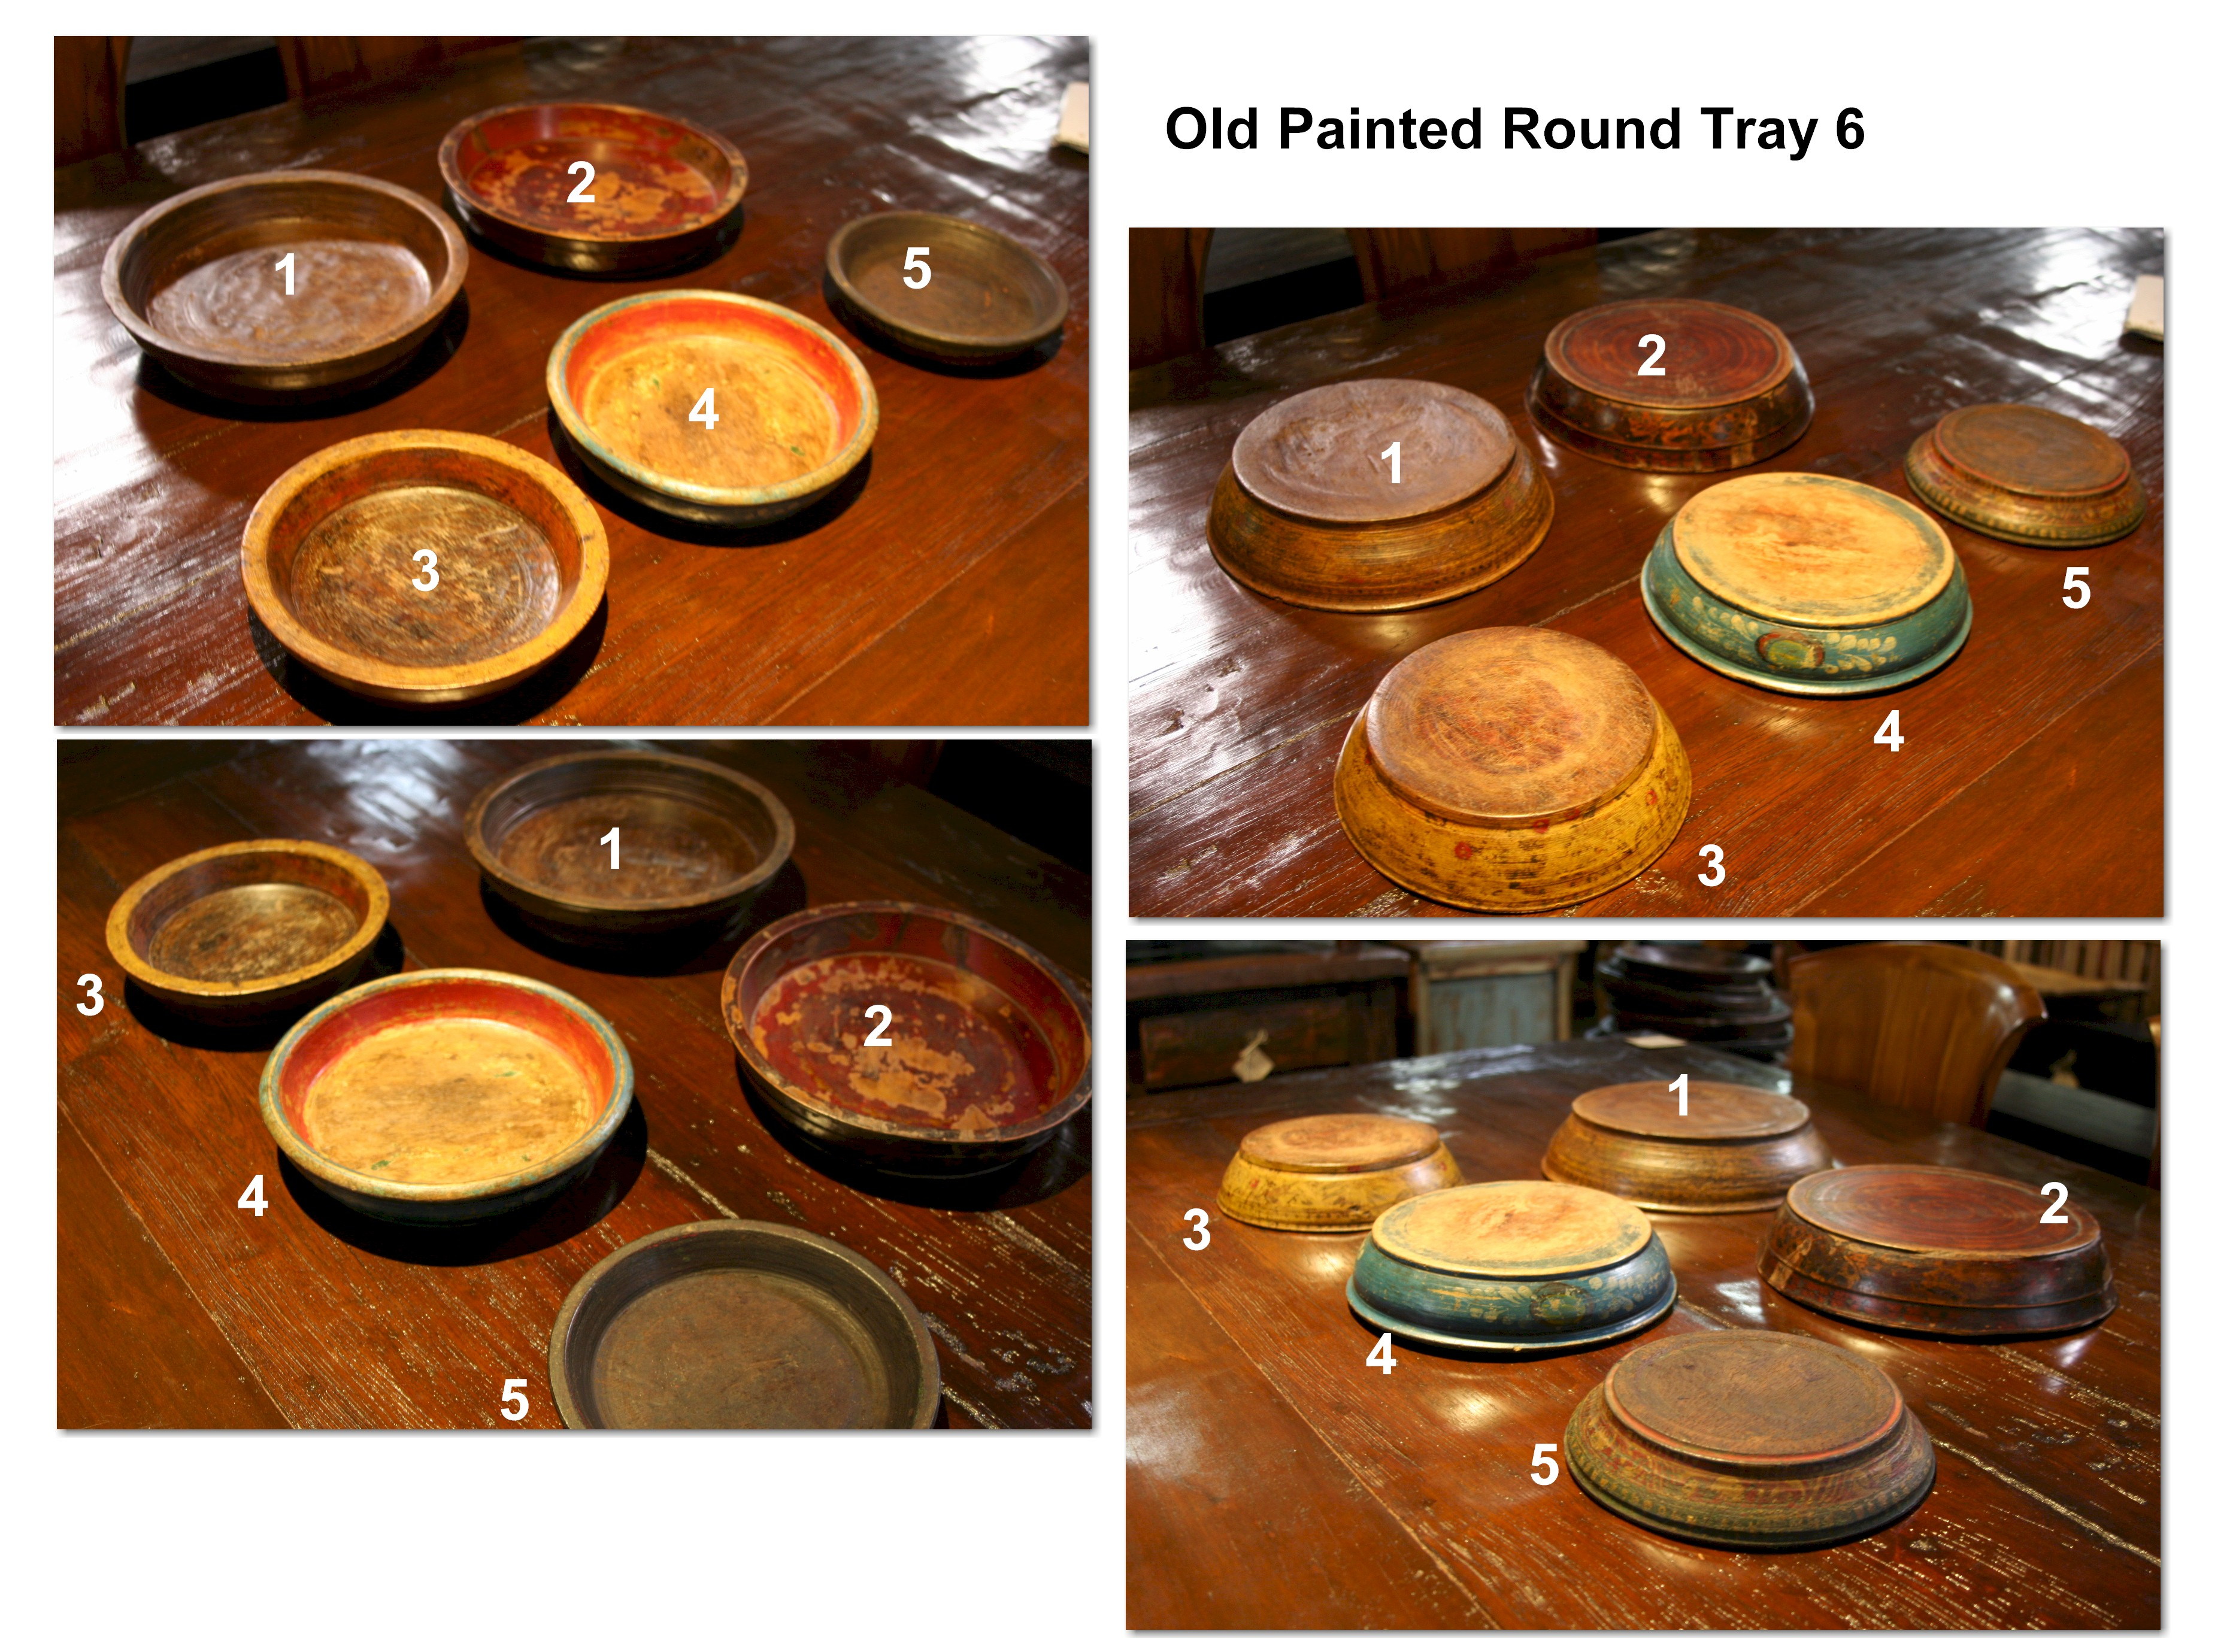 Old Painted Round Tray 6